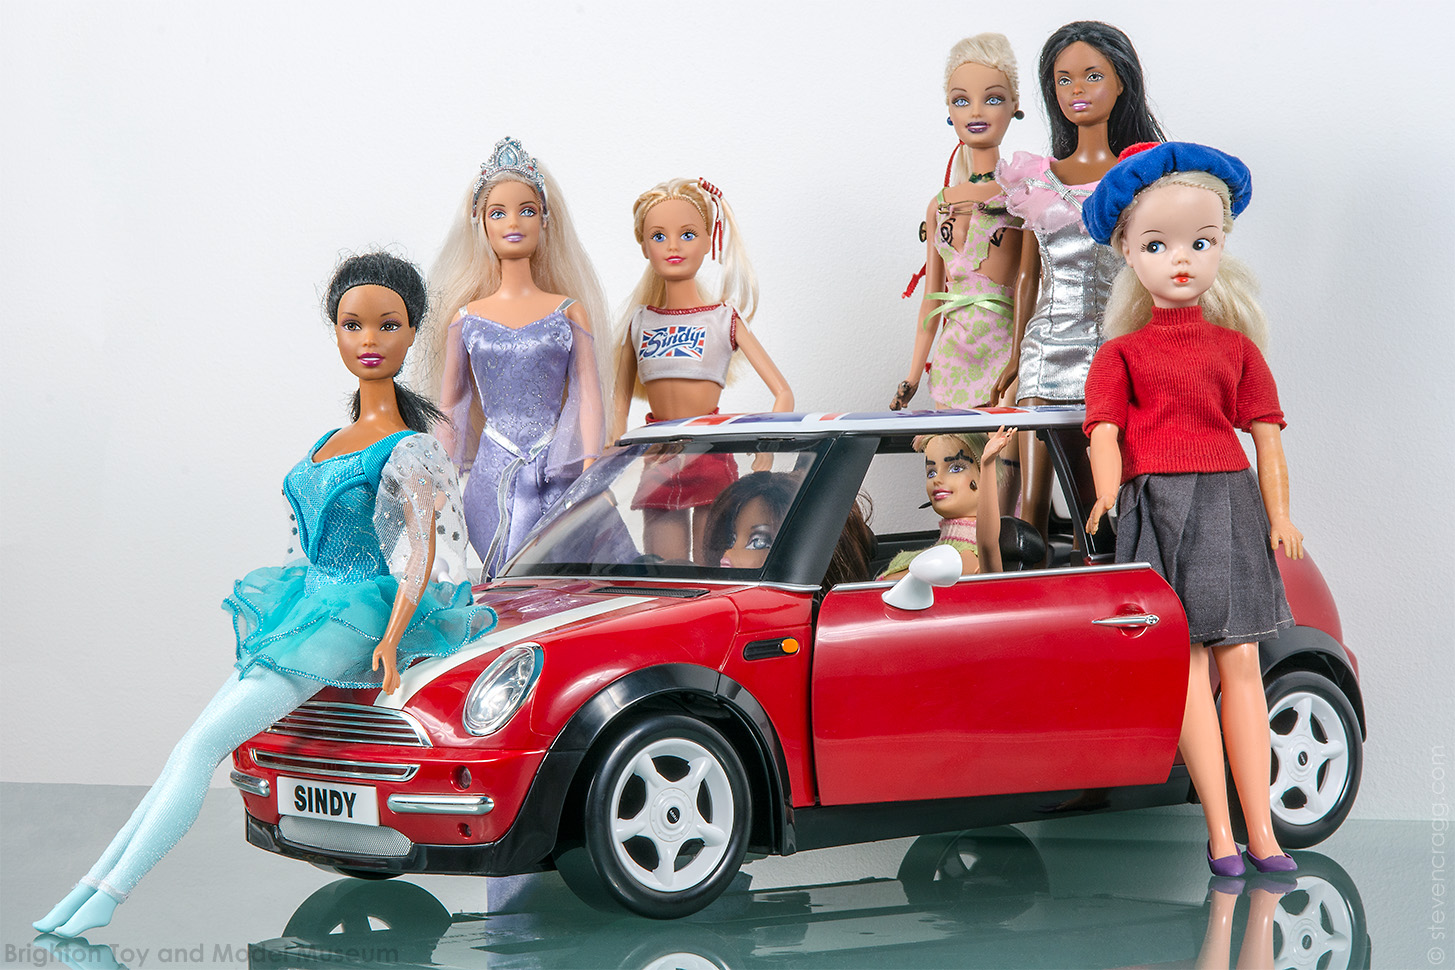 Sindy car - a red mini with Union Flag on the roof - with two dolls inside and six dolls standing outside from various eras